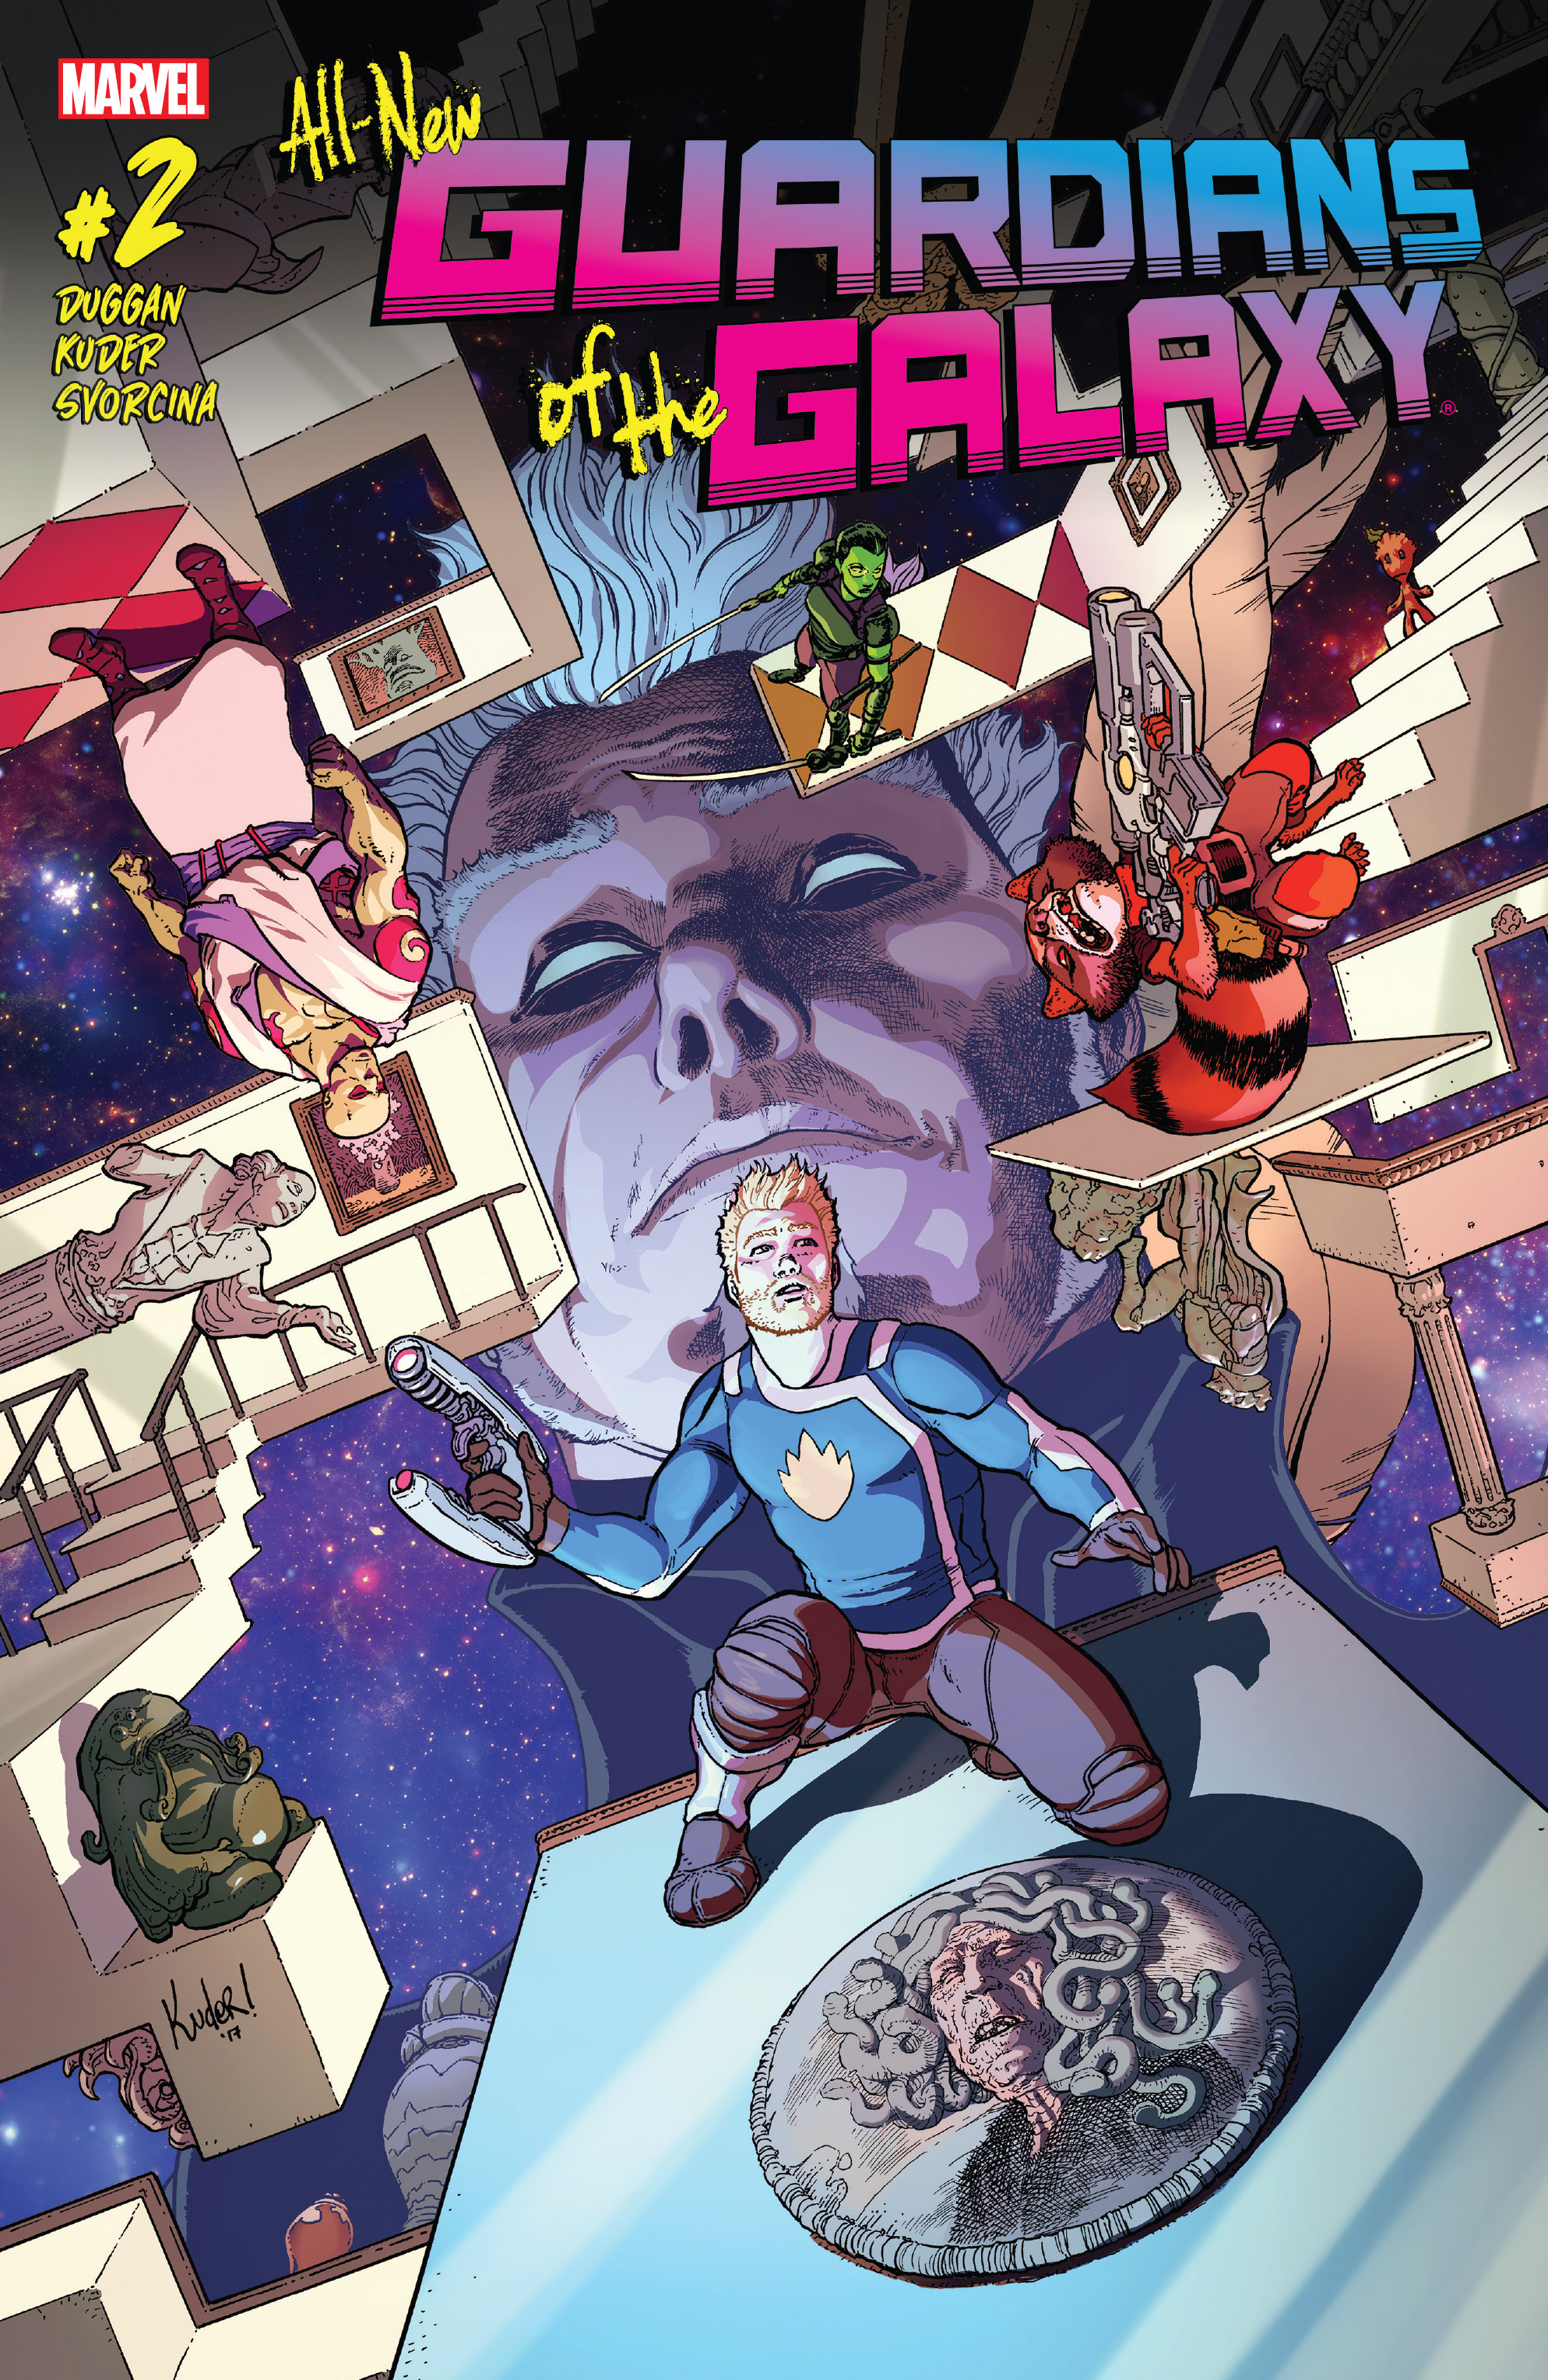 Read online All-New Guardians of the Galaxy comic -  Issue #2 - 1